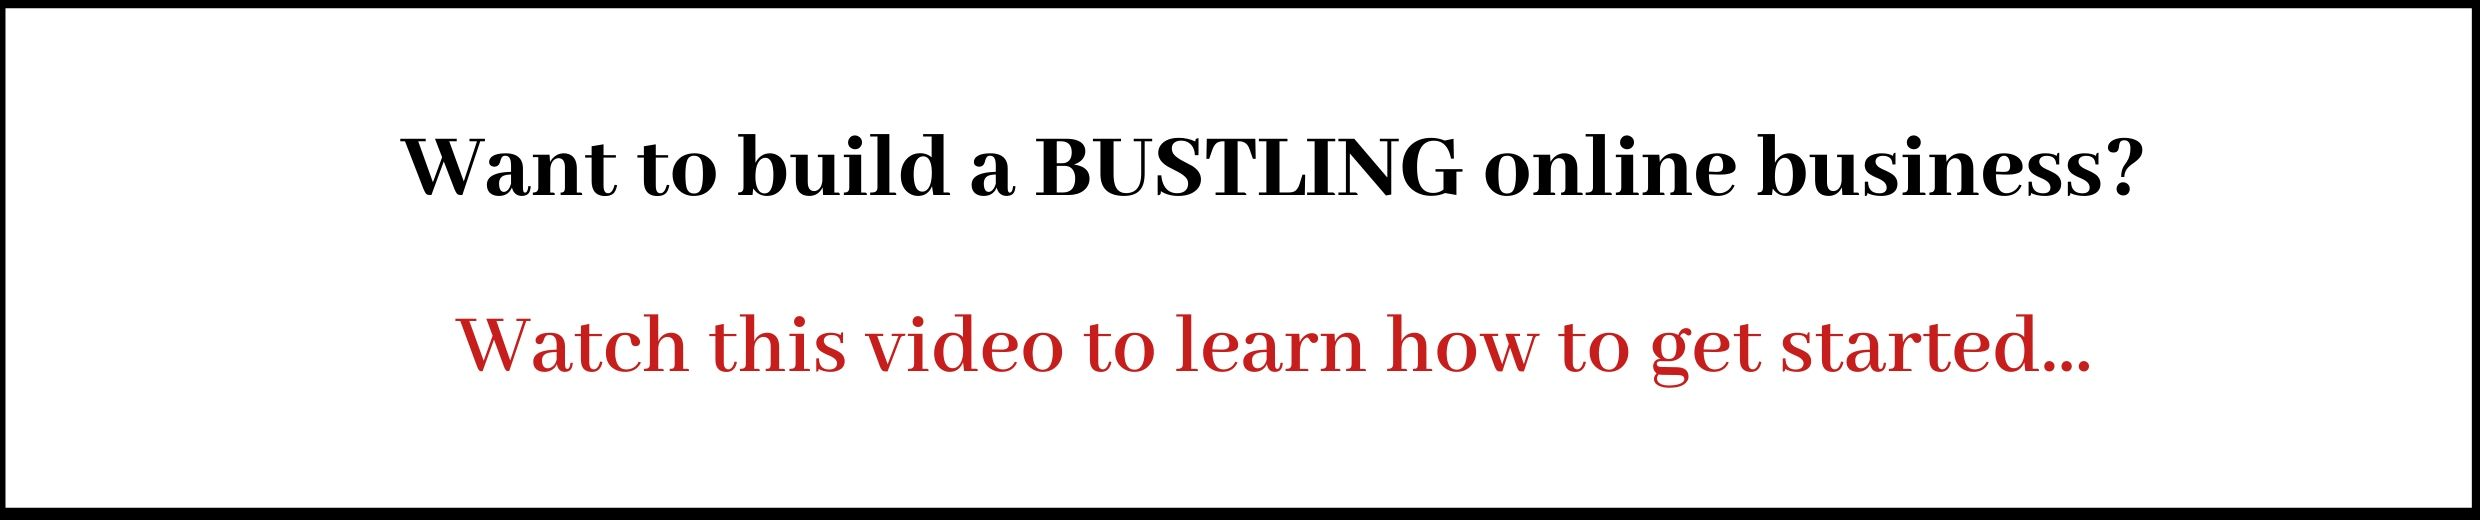 How To Write An Ebook Step By Step - Wealthy Affiliate's Training Course - Build A Business Banner